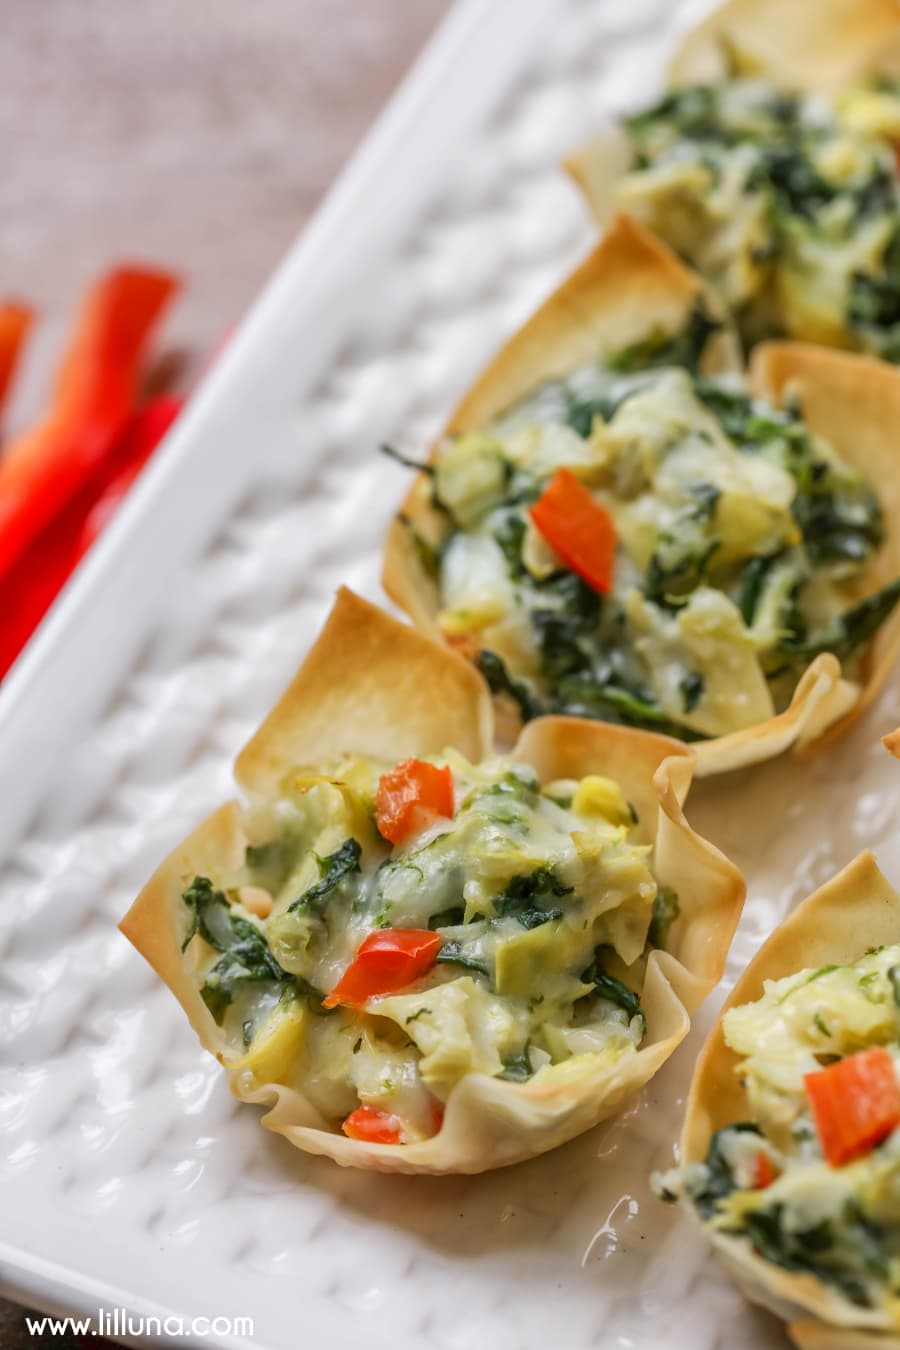 Cheesy Spinach and Artichoke Cups - this easy appetizer is full of flavor and perfect as an appetizer or side dish.